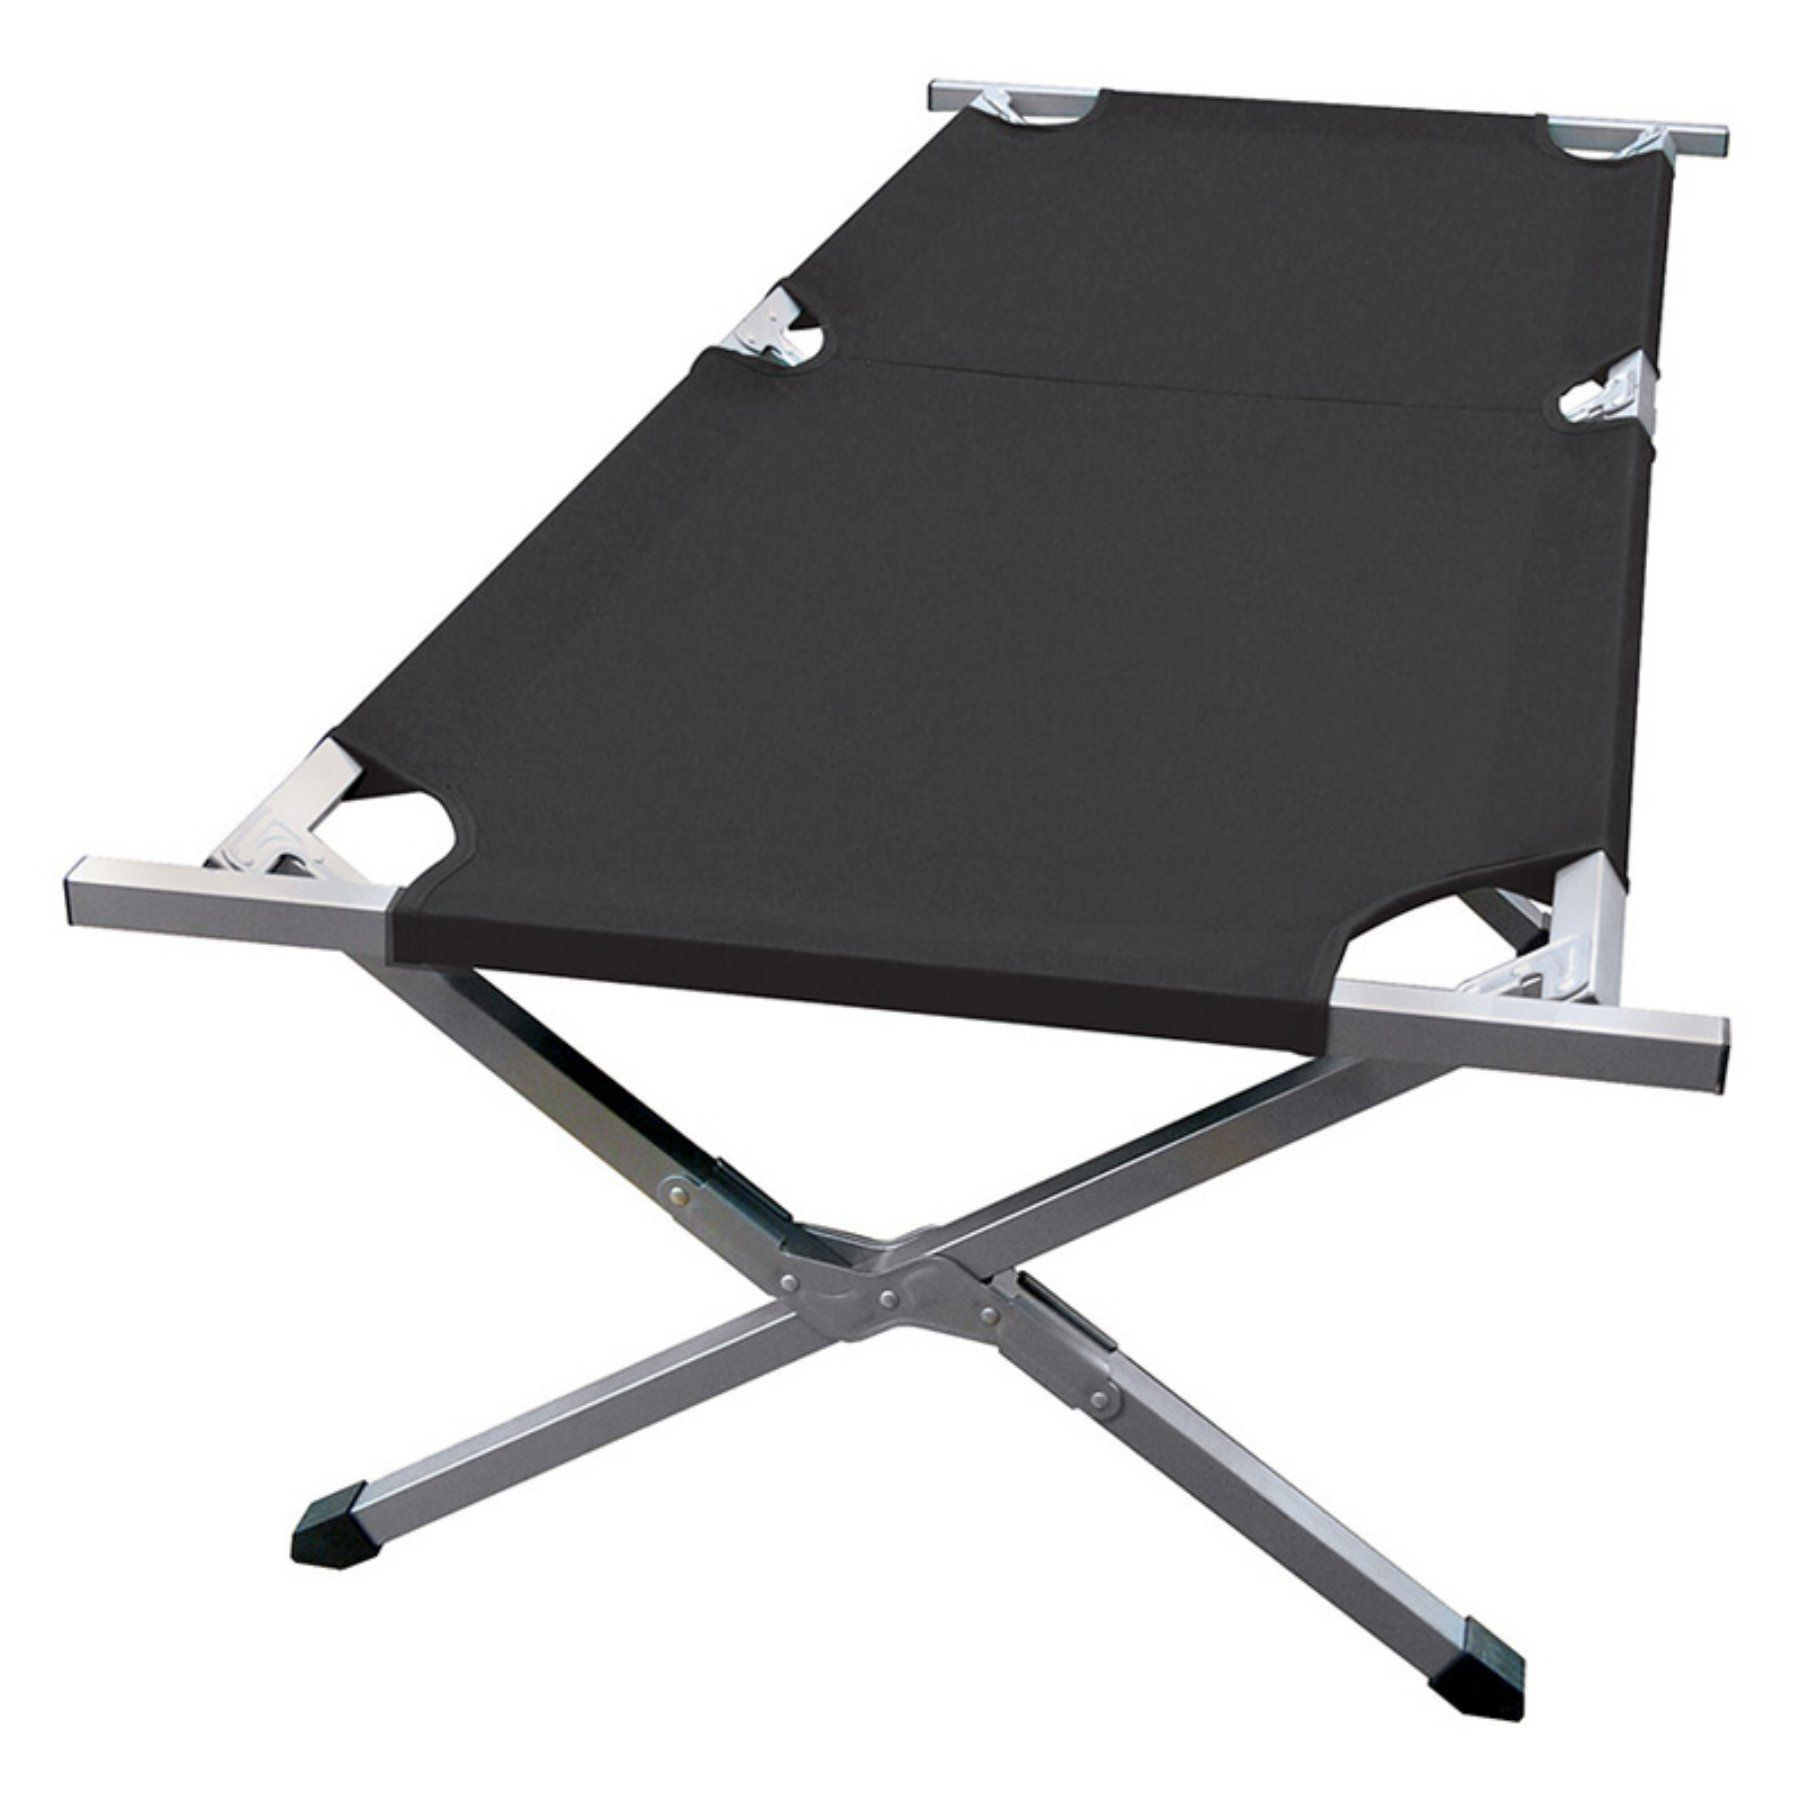 Stansport base camp folding cot g cots and products